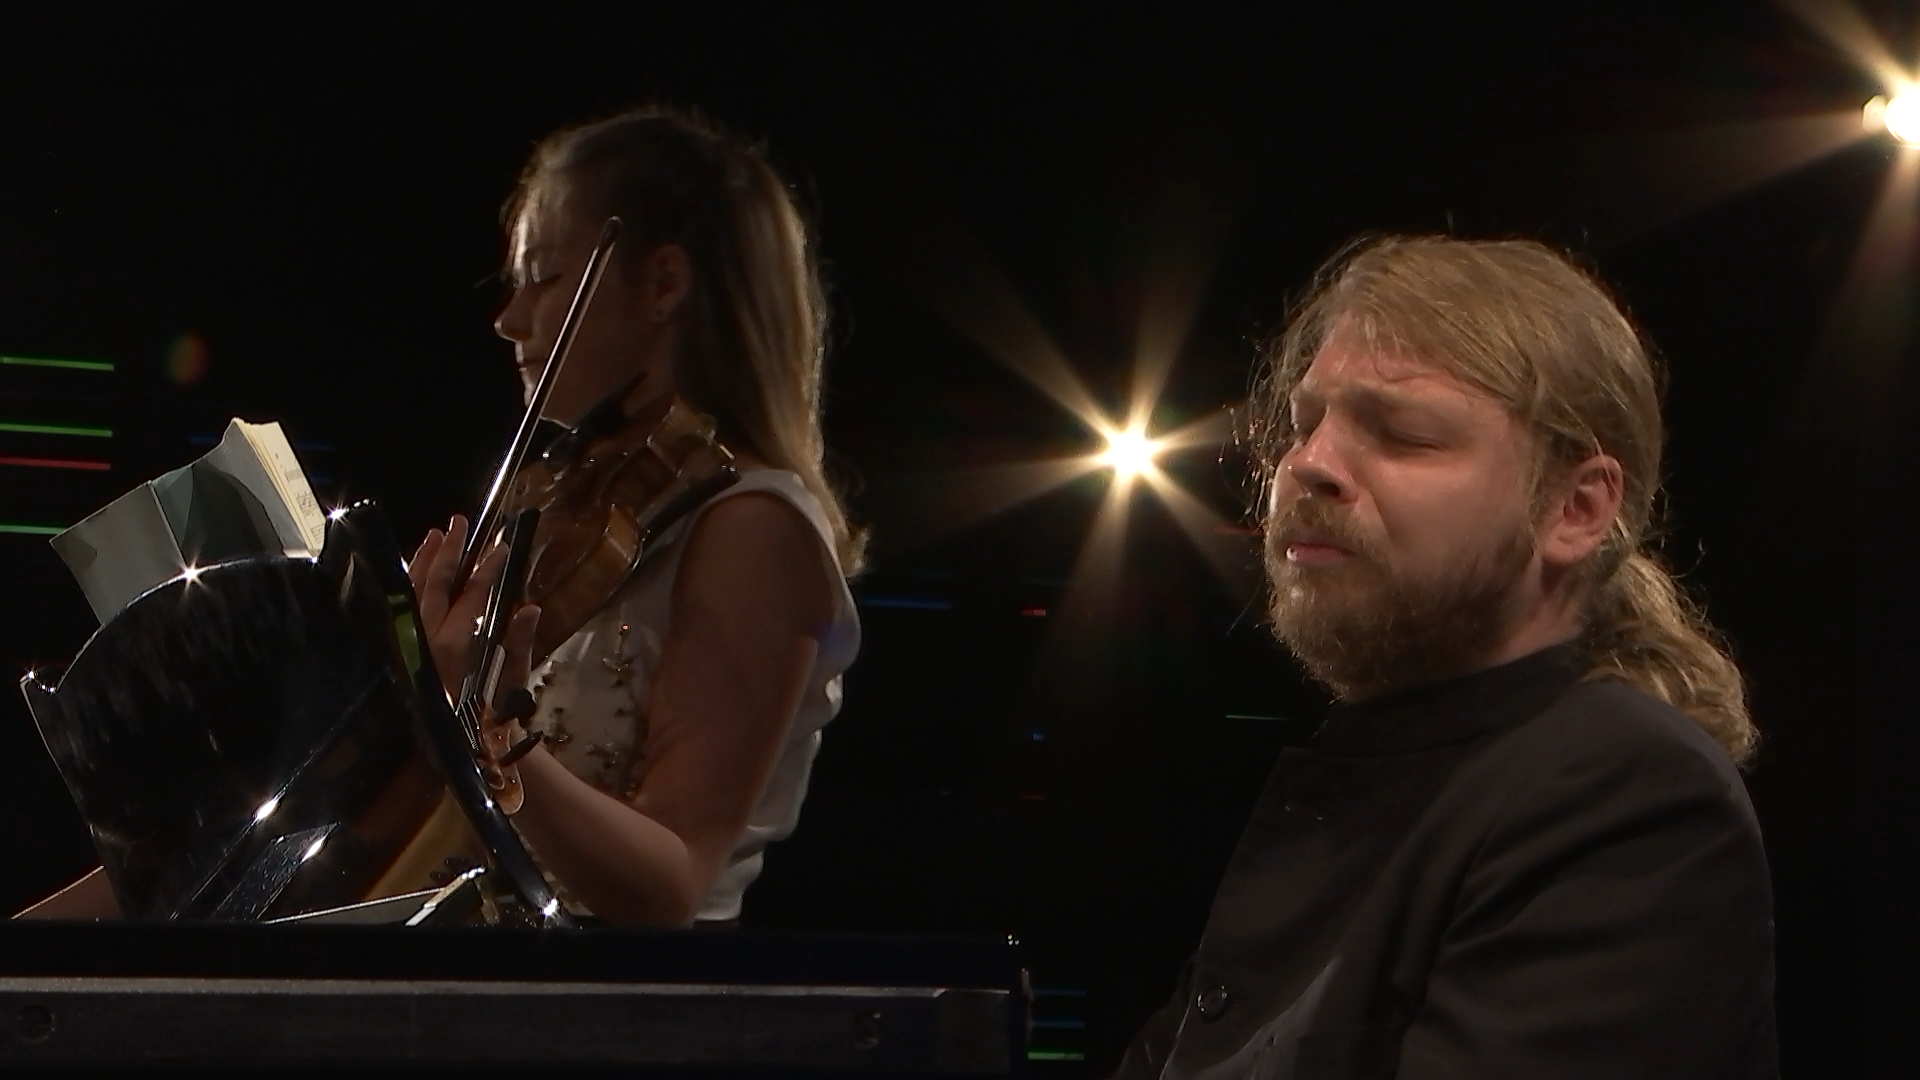 Alexandra Conunova and Denis Kozhukhin perform Beethoven, Prokofiev, Brahms, and Ravel